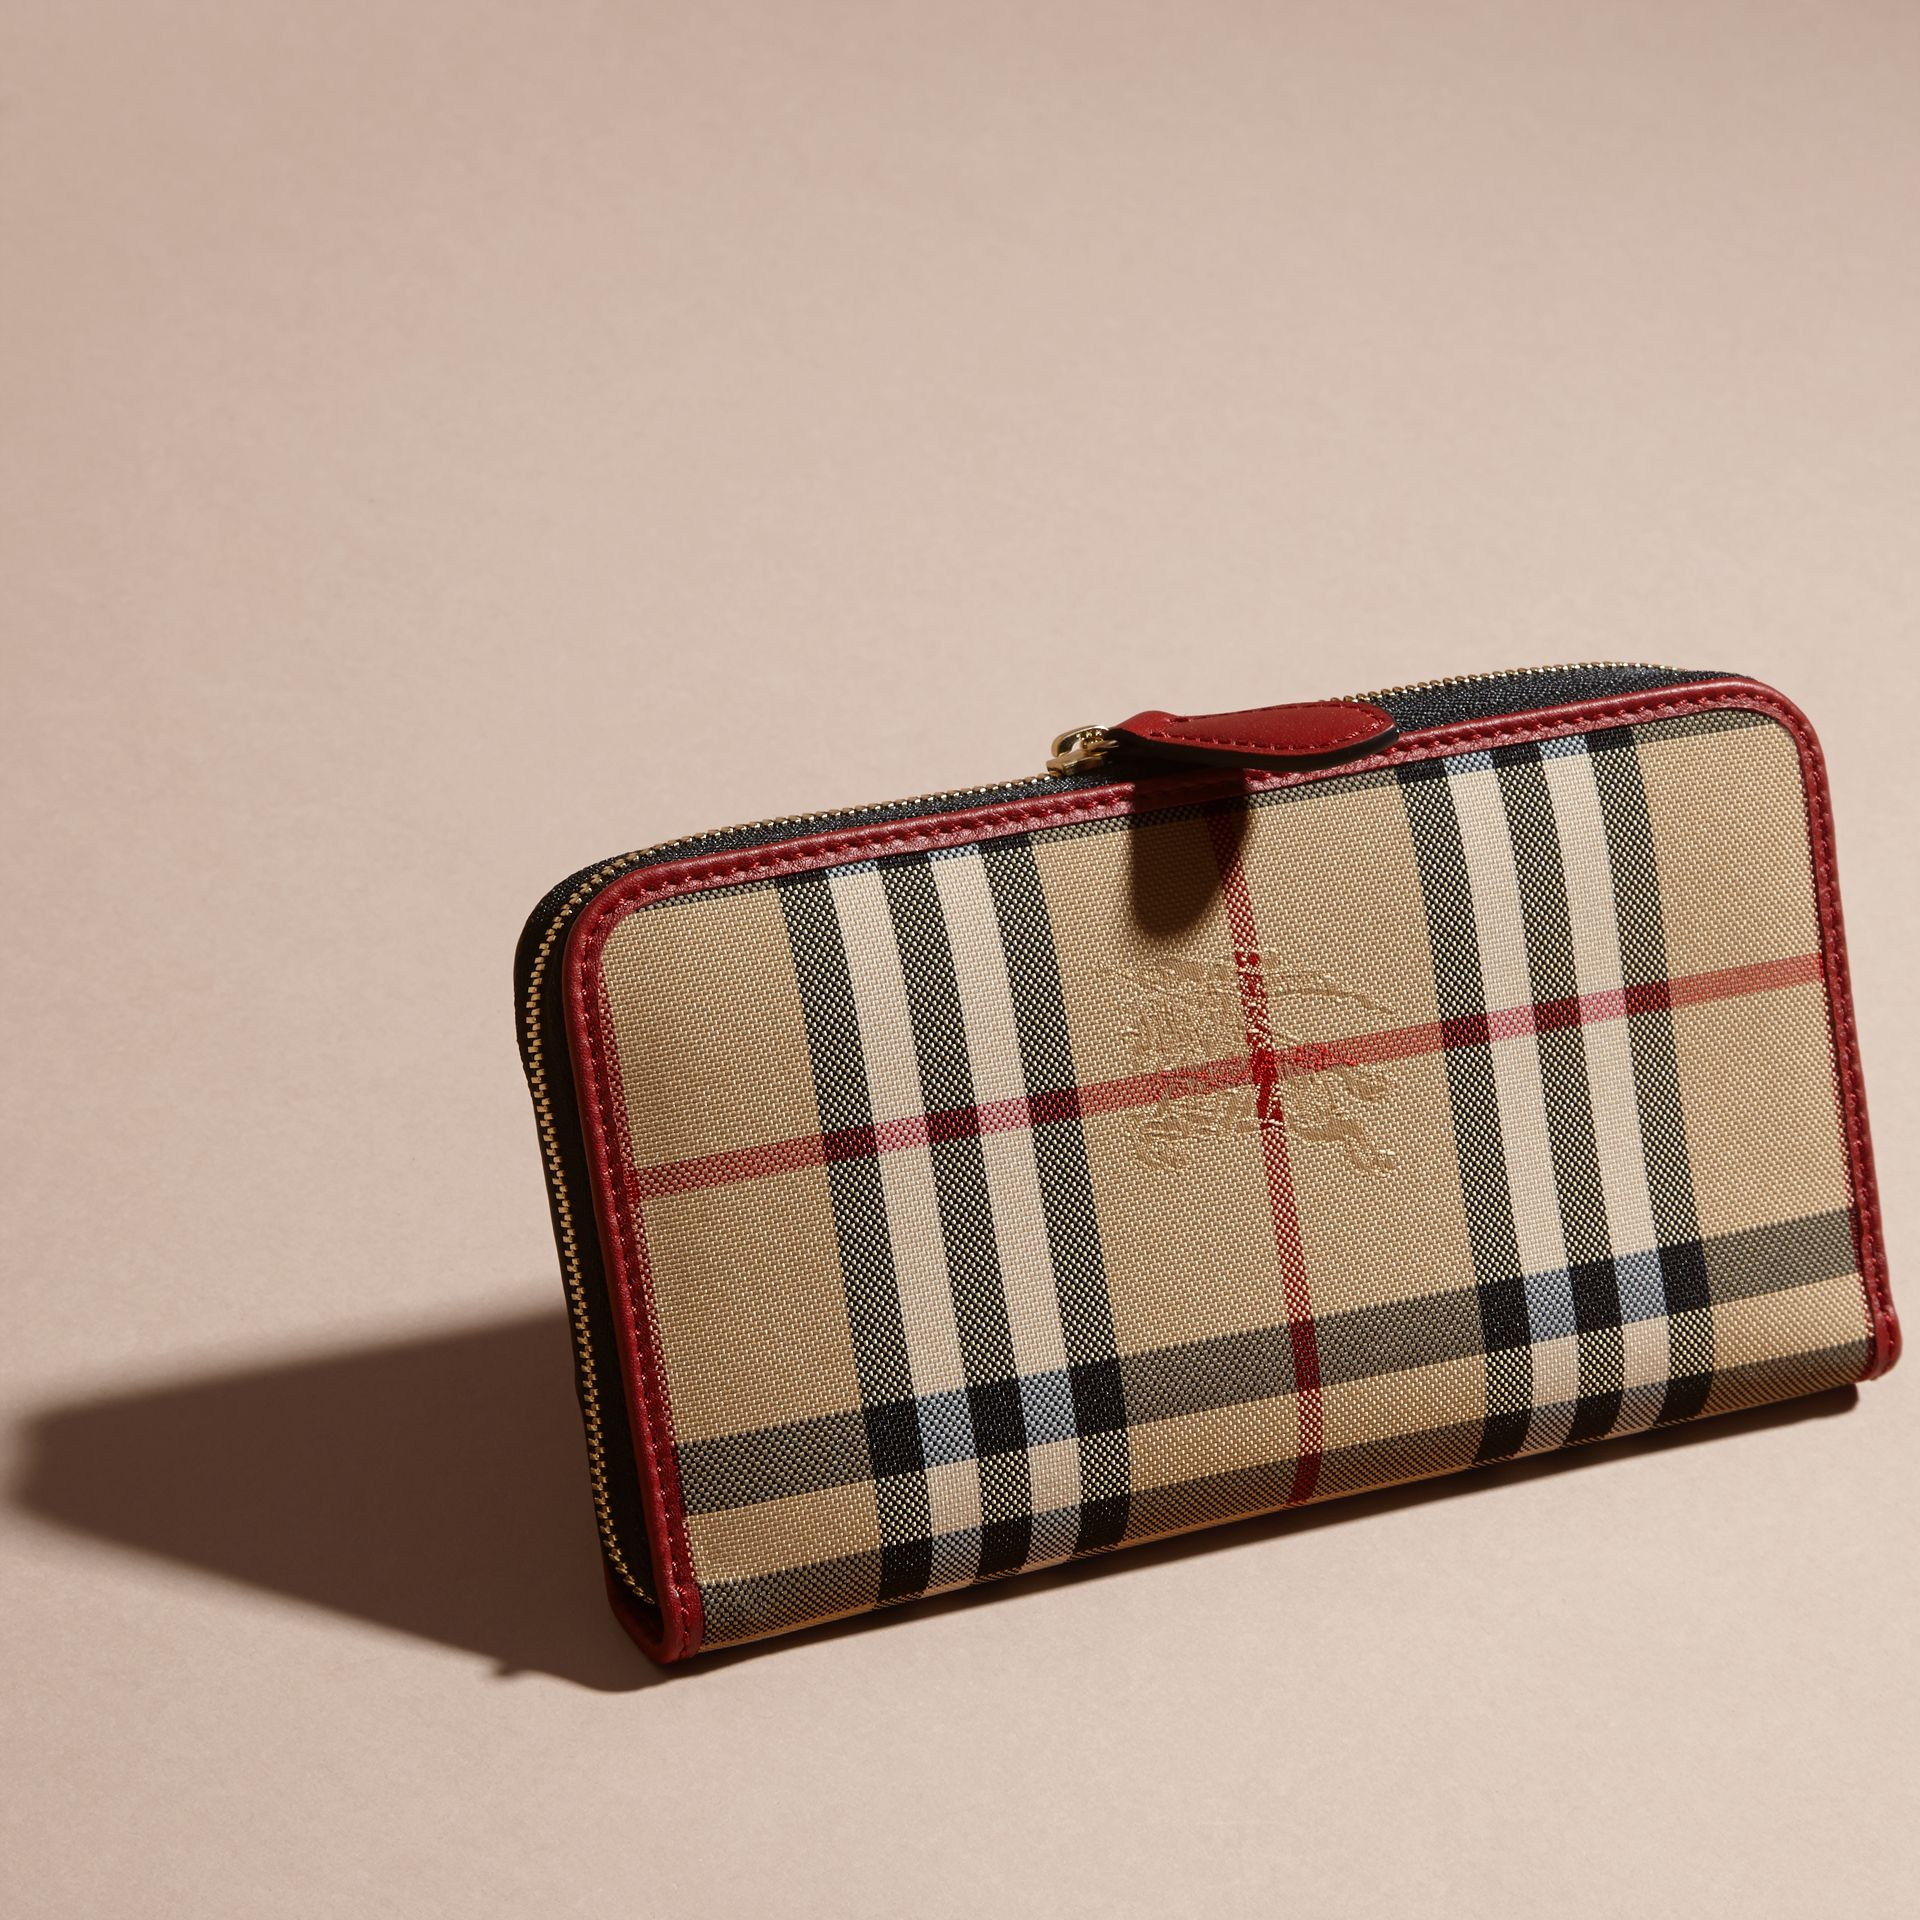 Horseferry Check and Leather Ziparound Wallet in Parade Red - Women | Burberry - gallery image 4